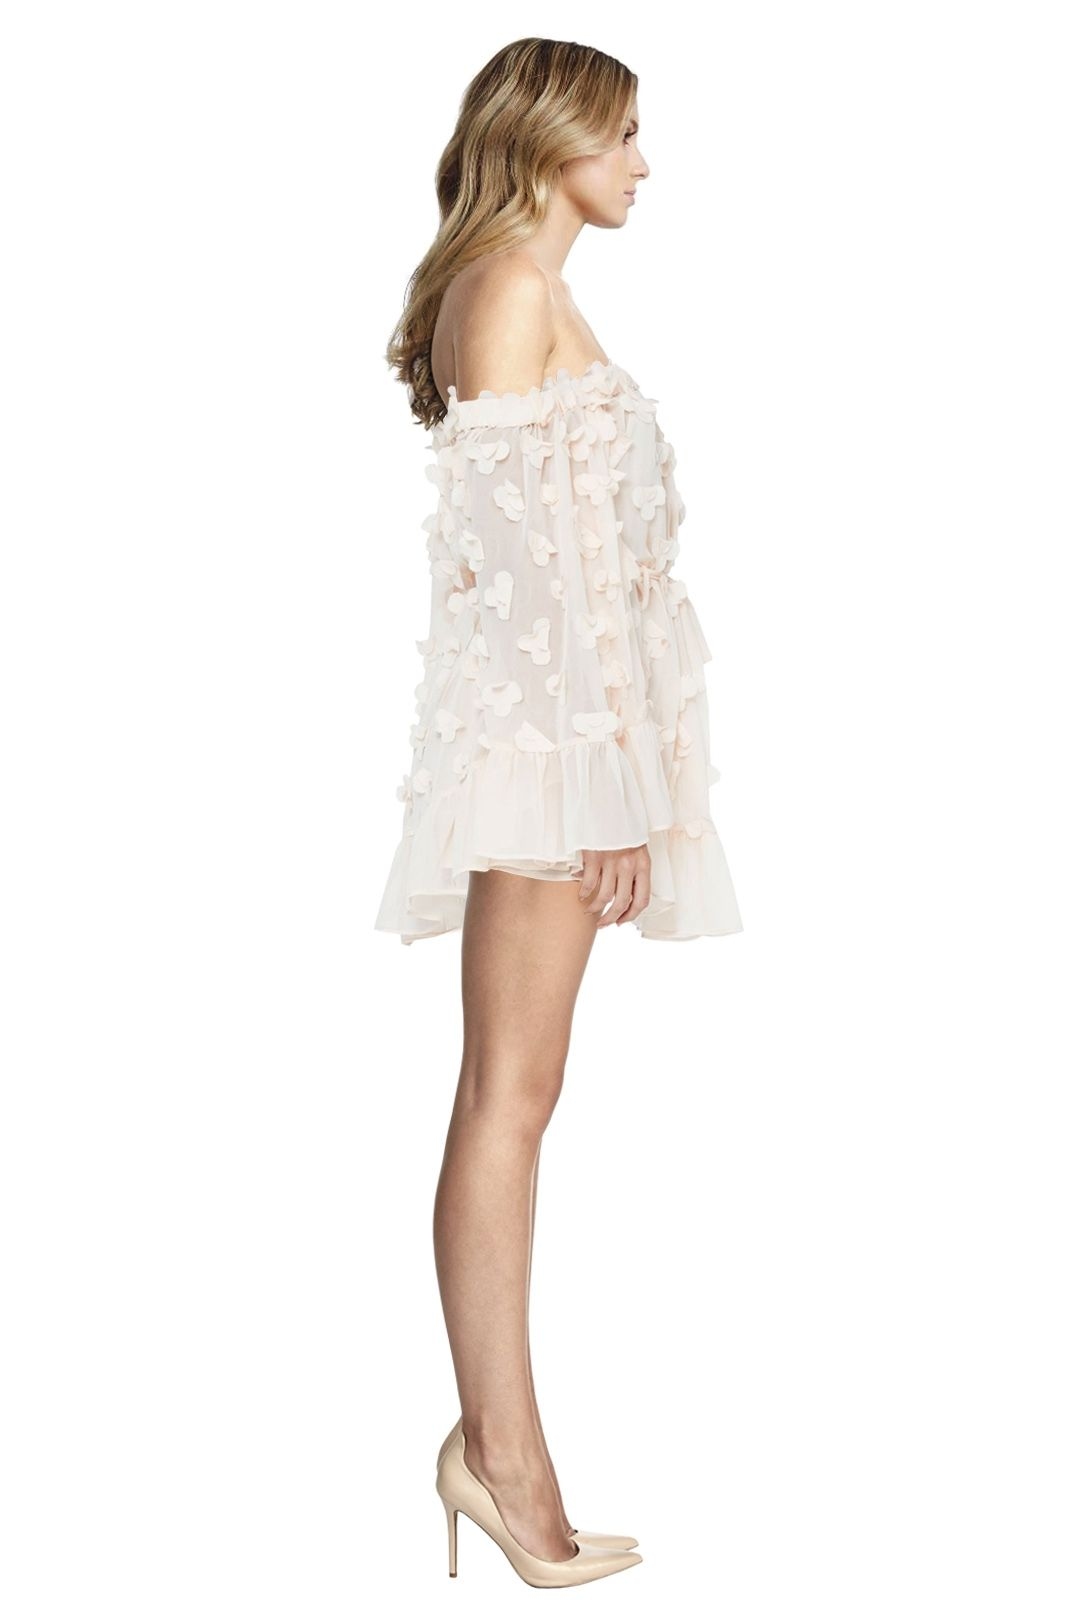 Alice McCall - Pastime Paradise Playsuit - Shell Pink - Side